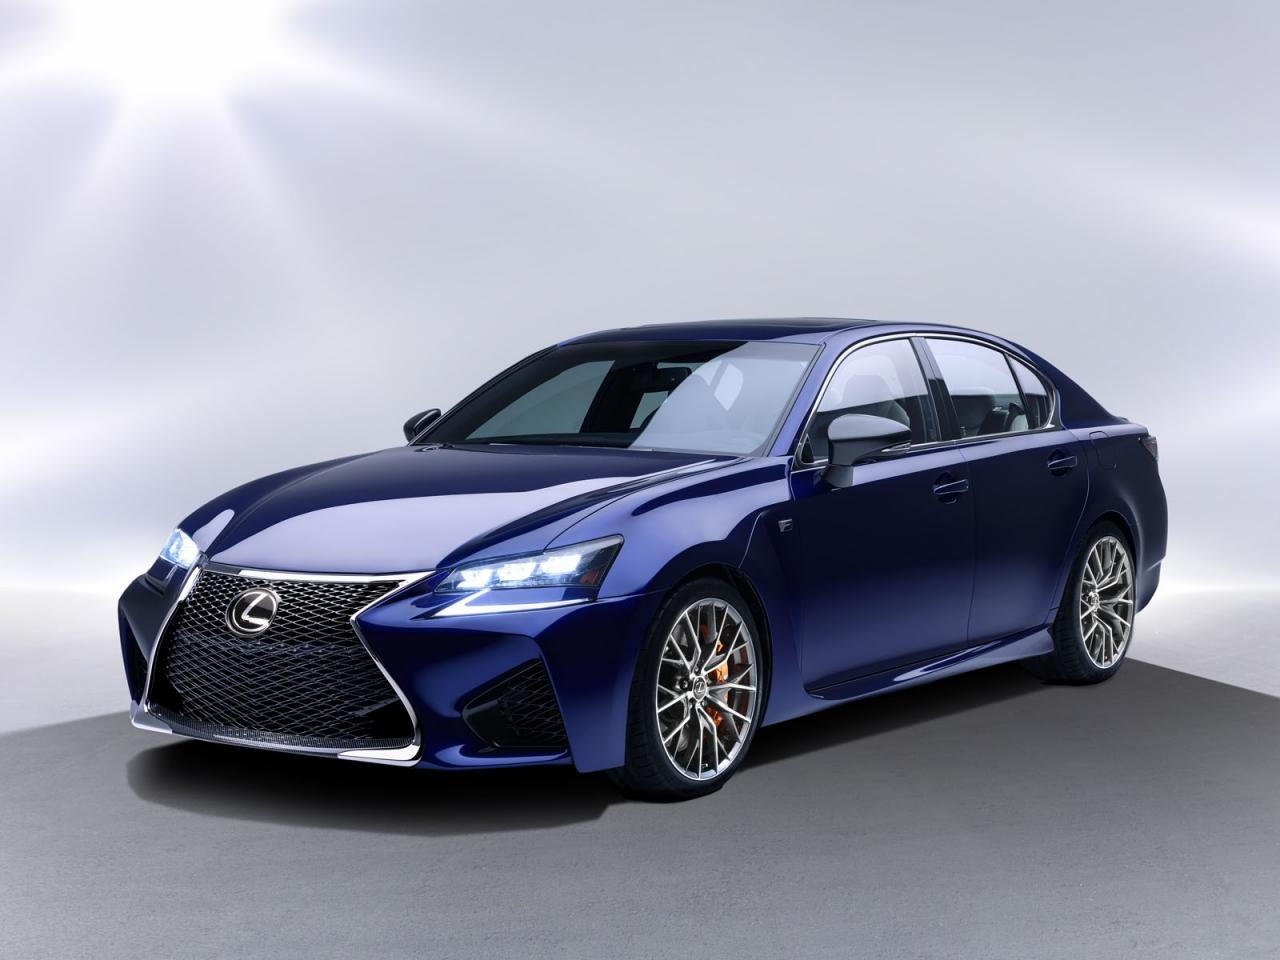 Premiere in Detroit: Lexus GS-F